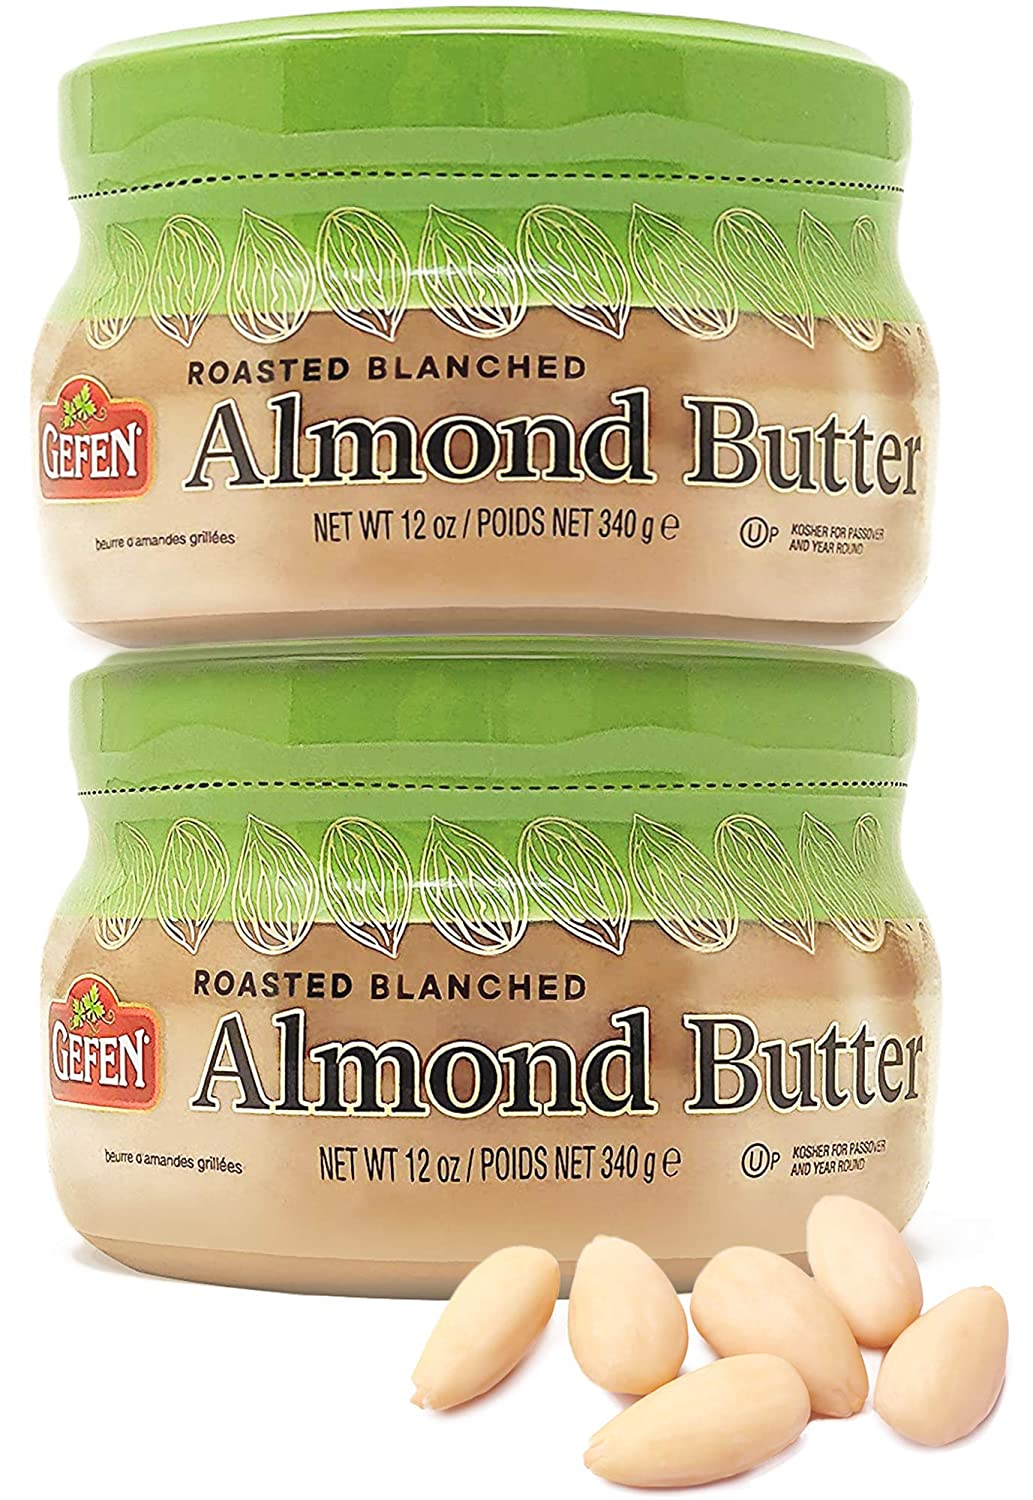 Gefen Roasted & Blanched Pure Almond Butter 12oz (2 Pack), Smooth, Rich & Super Creamy, Non GMO, Kosher for Passover